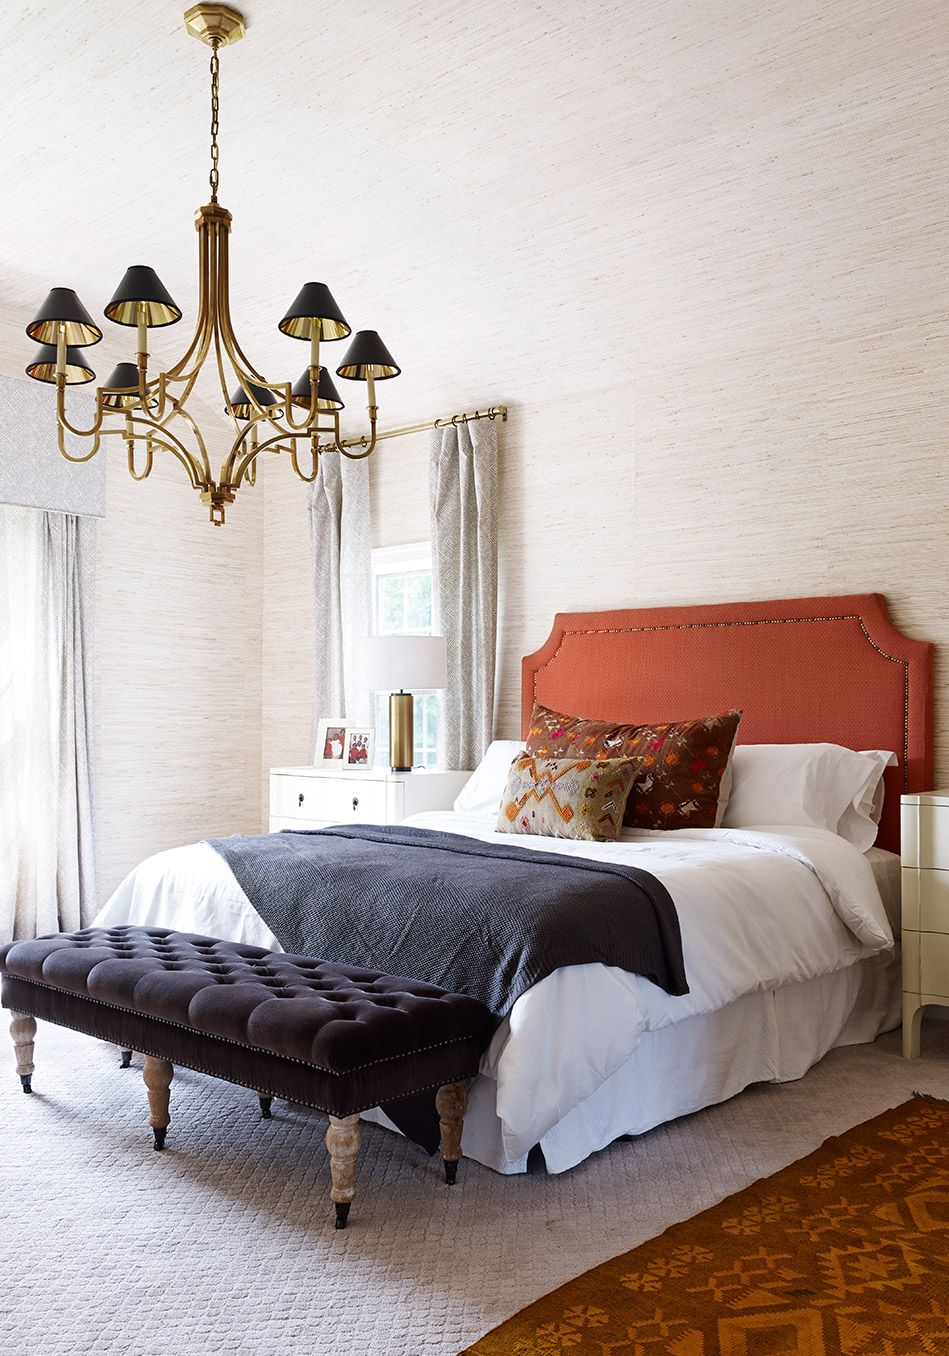 Photos Of How Nate Berkus Made Over Iyanlas Home Nate Berkus - Nate berkus bedroom designs